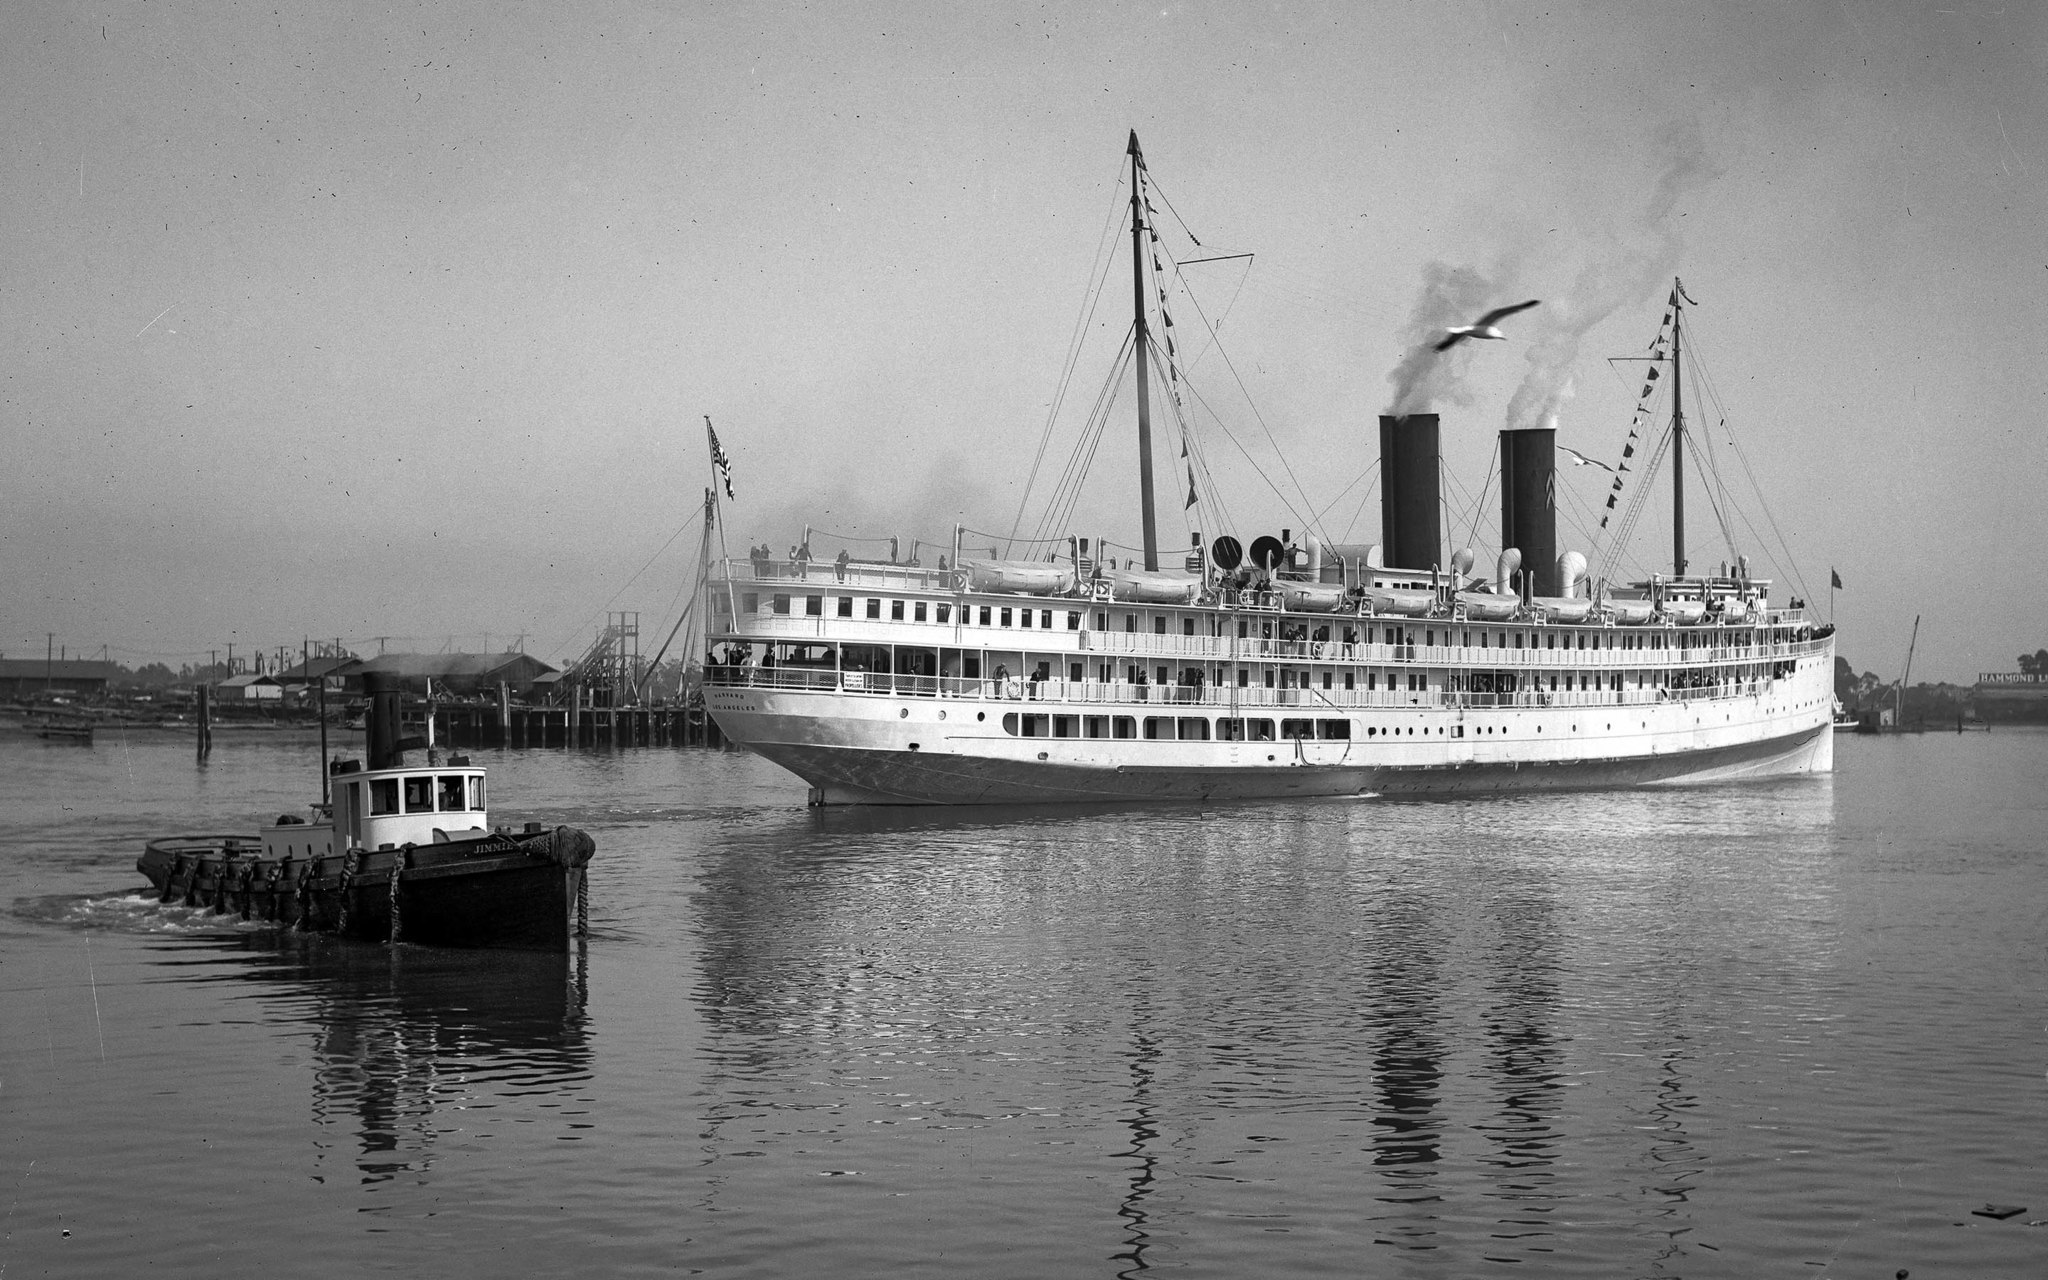 Aug. 5, 1921: The S.S. Harvard steams out of Los Angeles Harbor bound for San Francisco for its firs